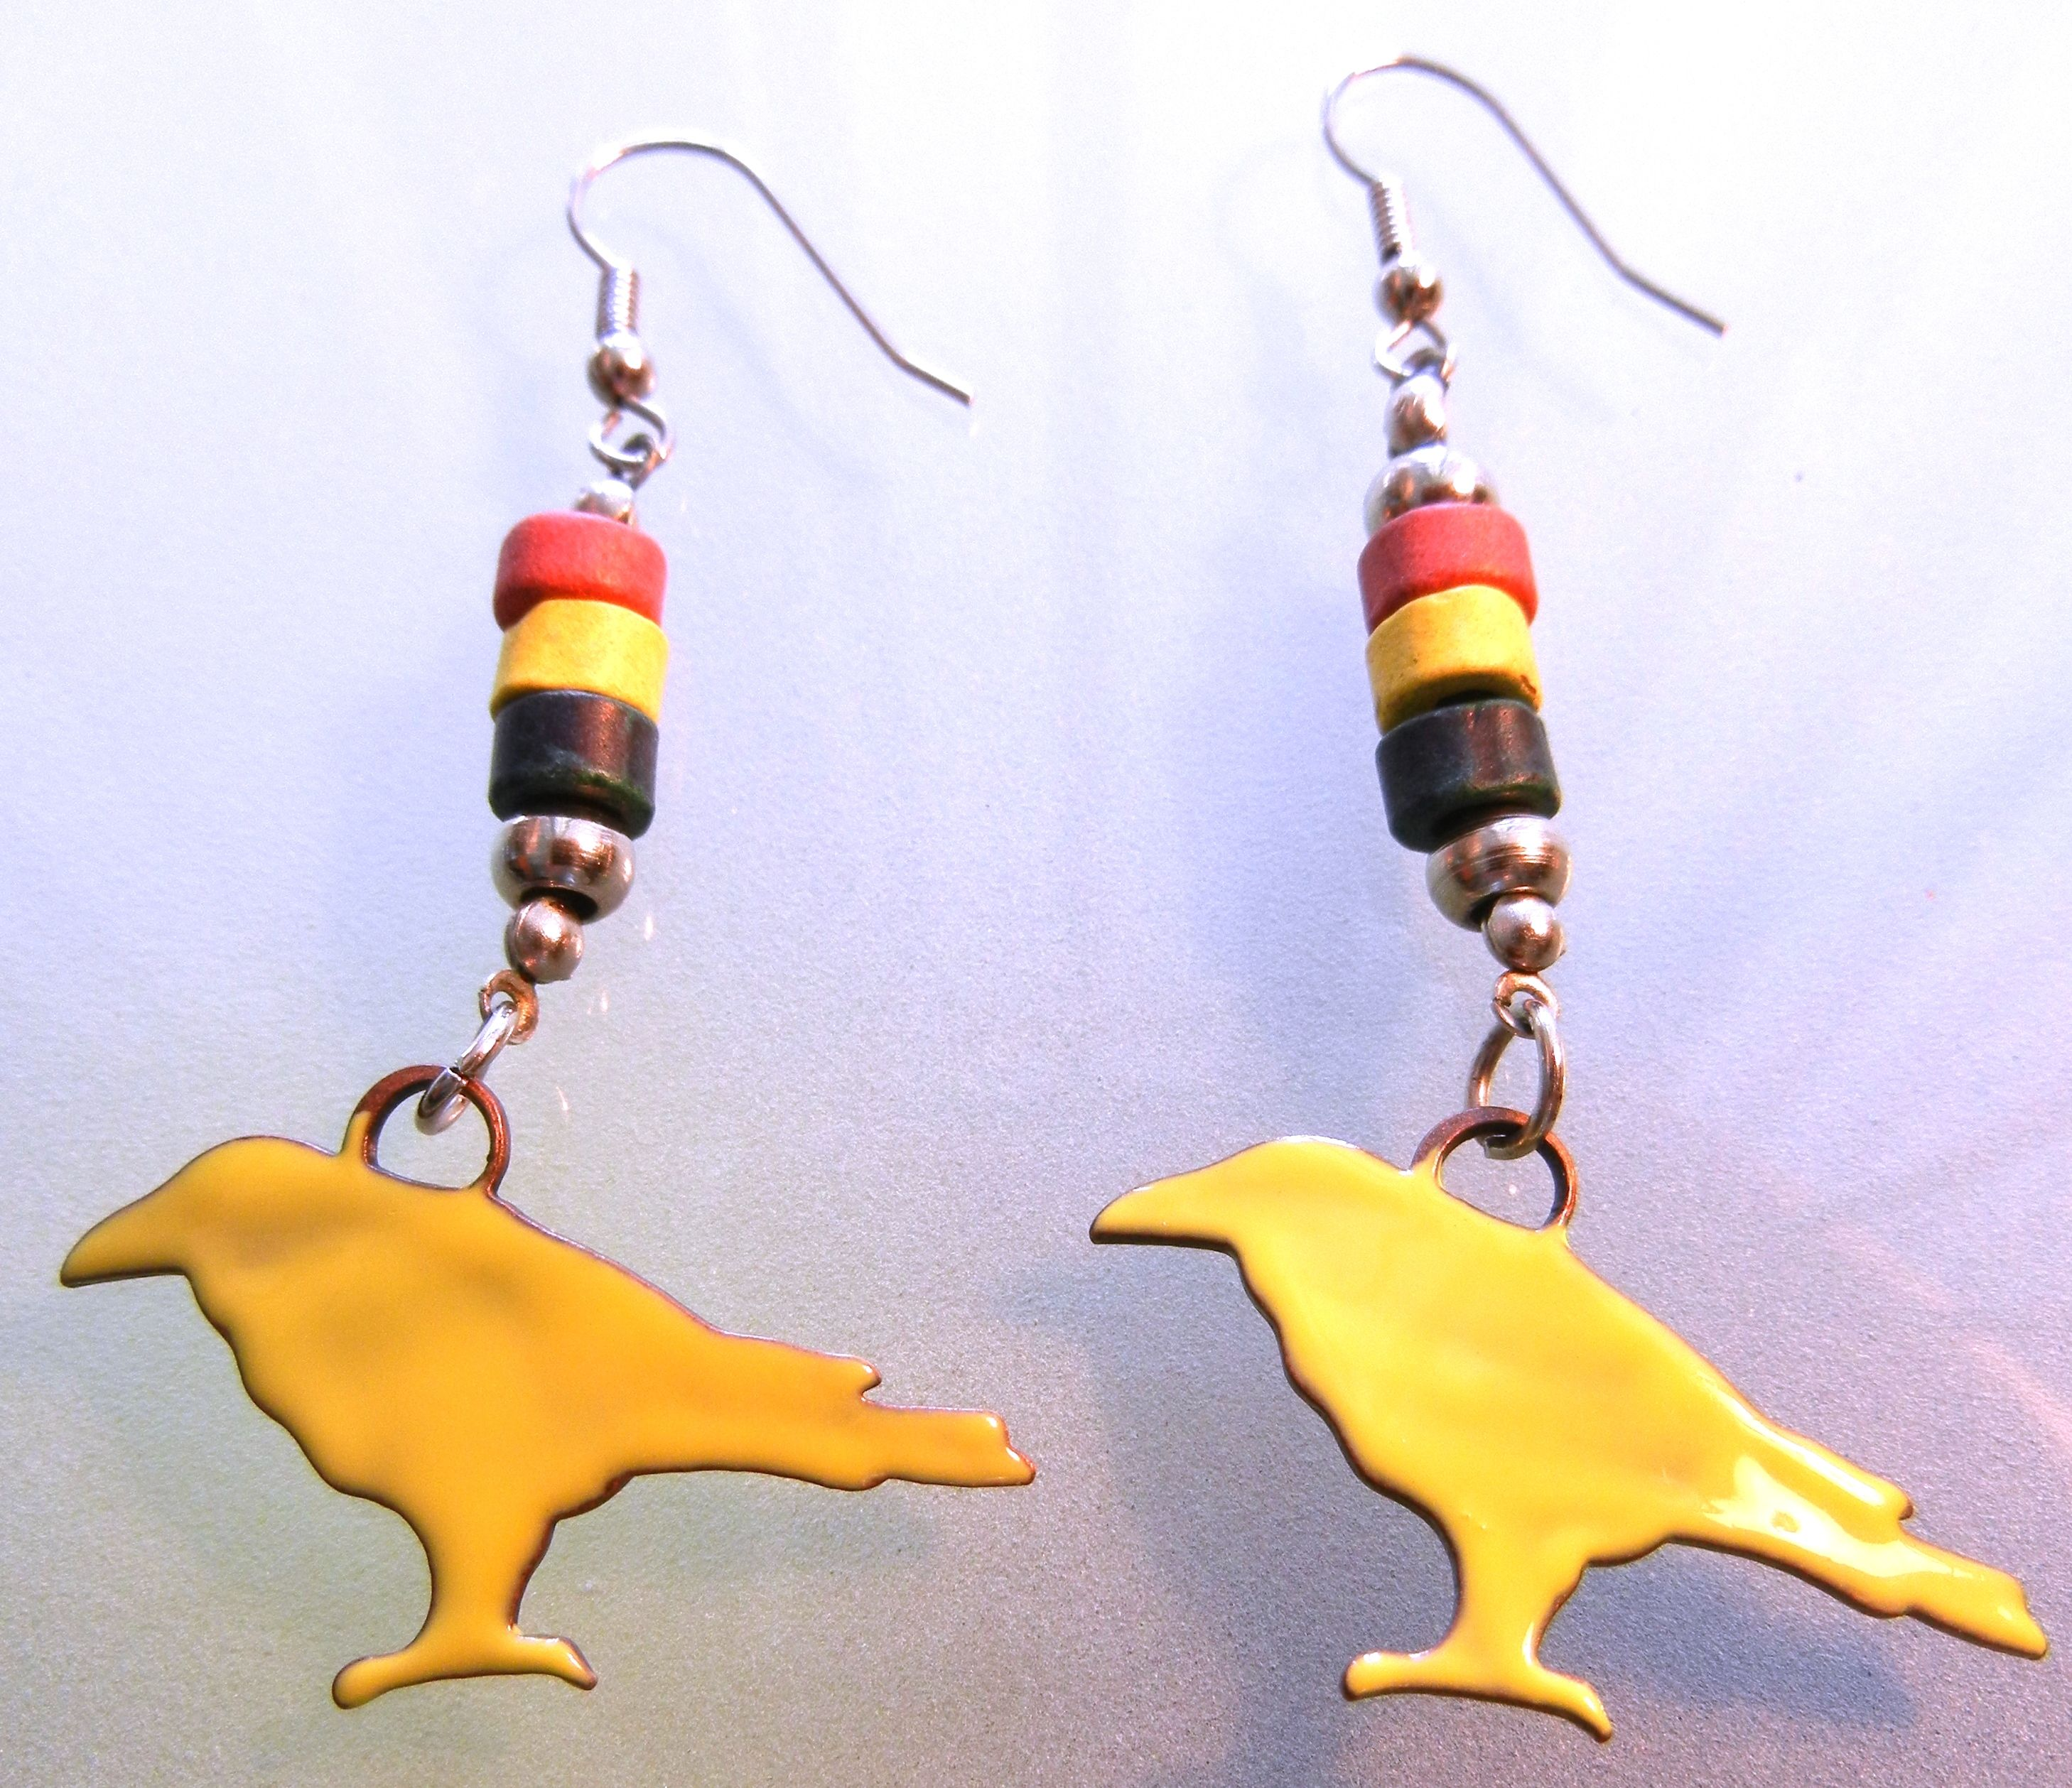 Yellow enamel bird earrings (Again, you find the most interesting objects at Michael's. I got bored of the steel peace signs originally dangling from these earrings so I substituted something more my style.)